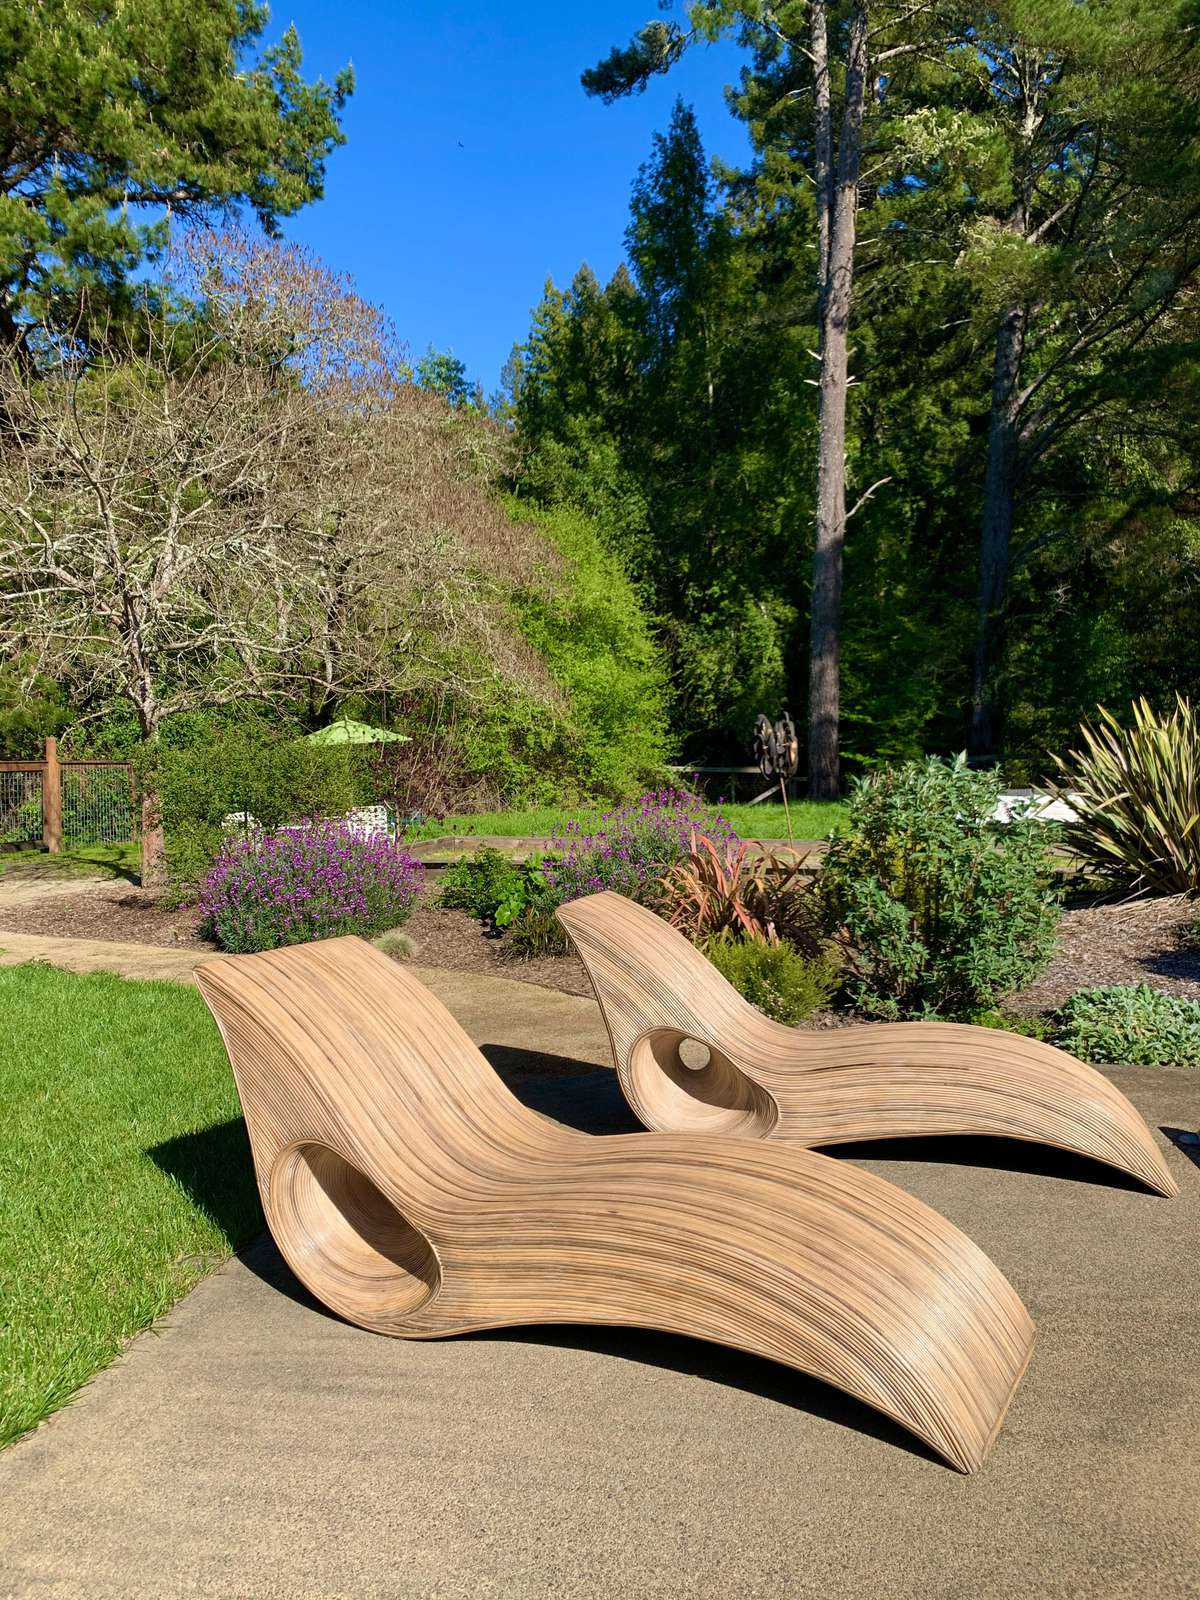 Handcrafted Balinese bamboo loungers